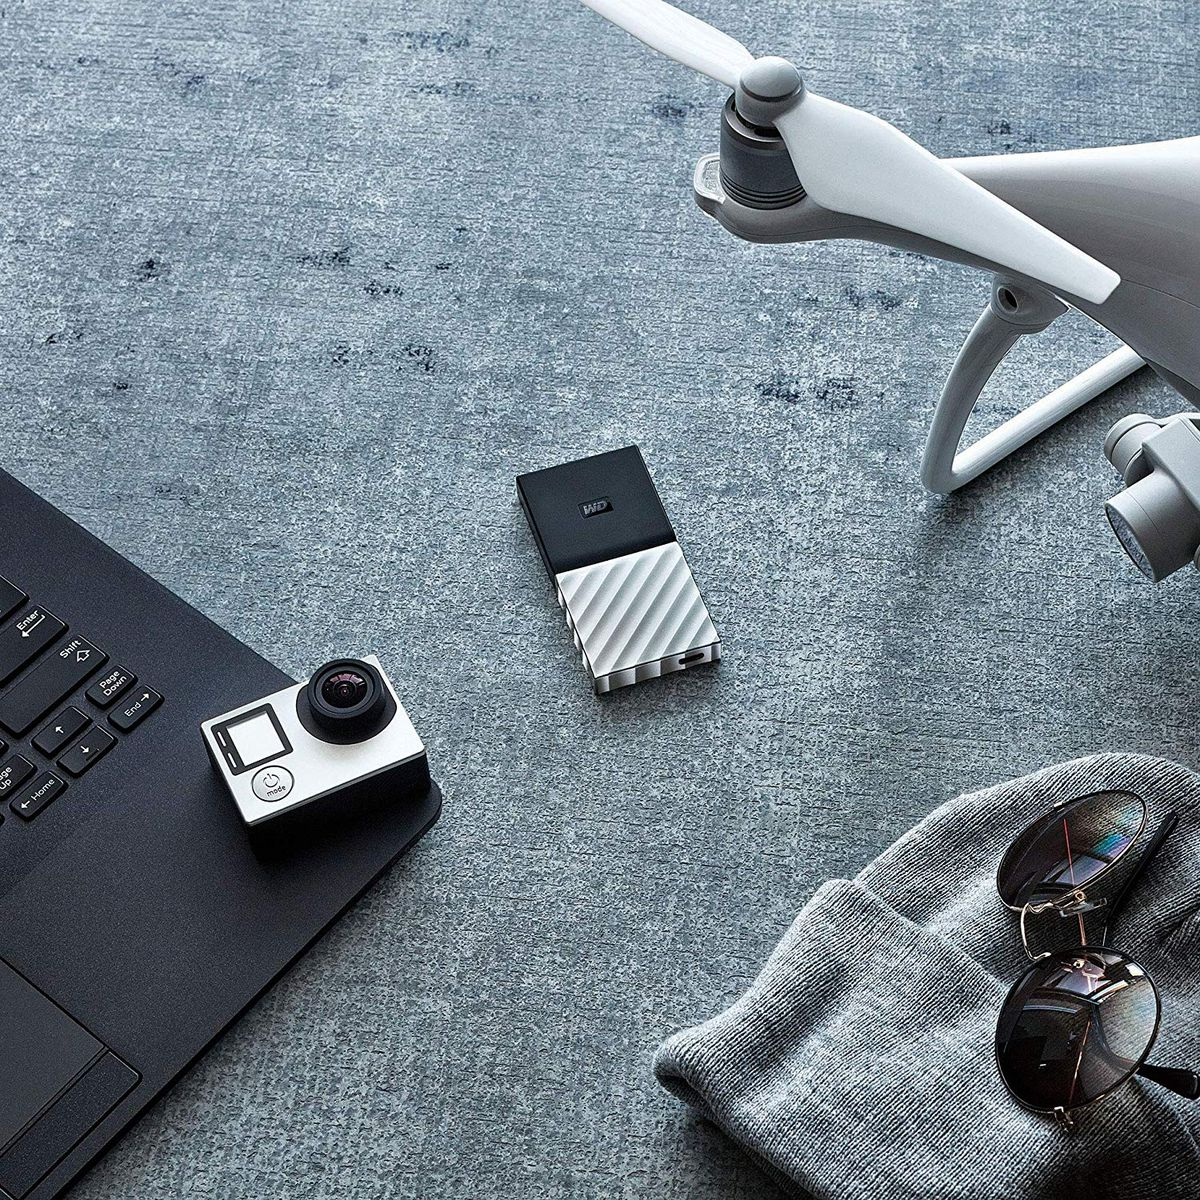 Portable storage from WD is on sale.